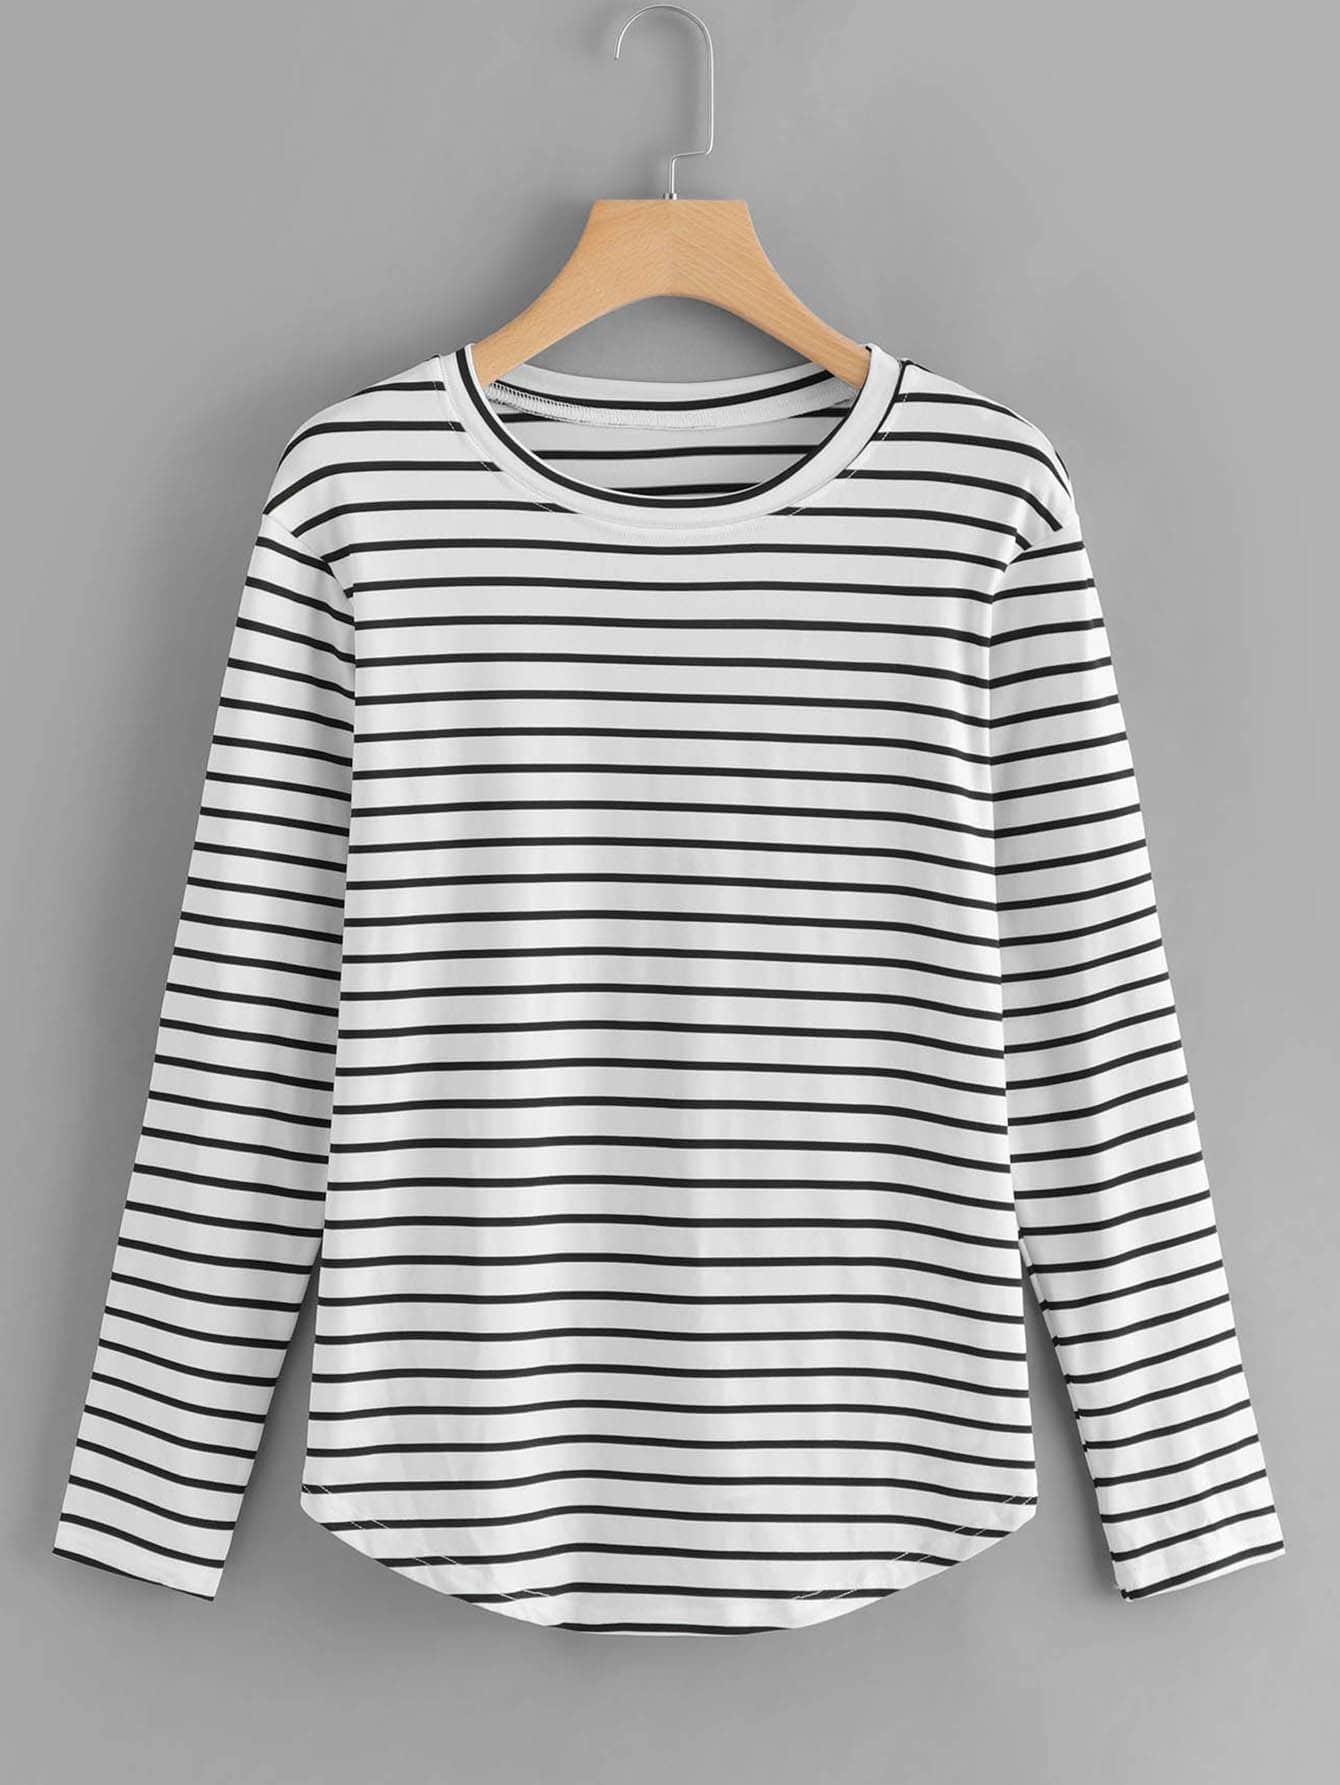 White Elbow Patch Striped T-shirt